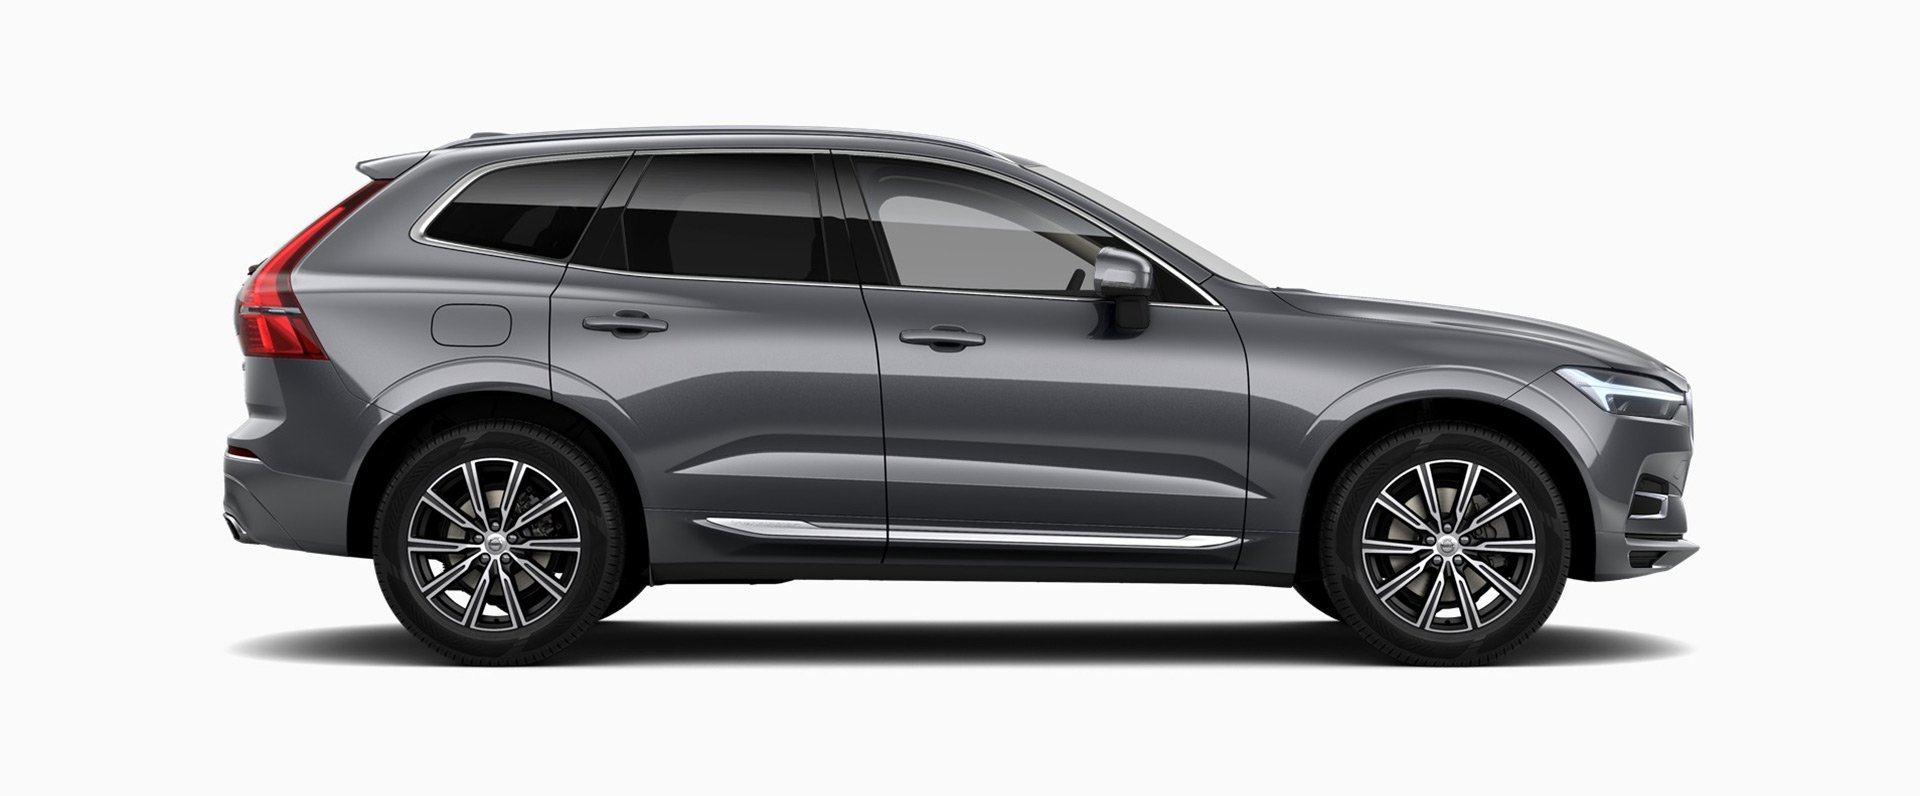 xc60-lateral